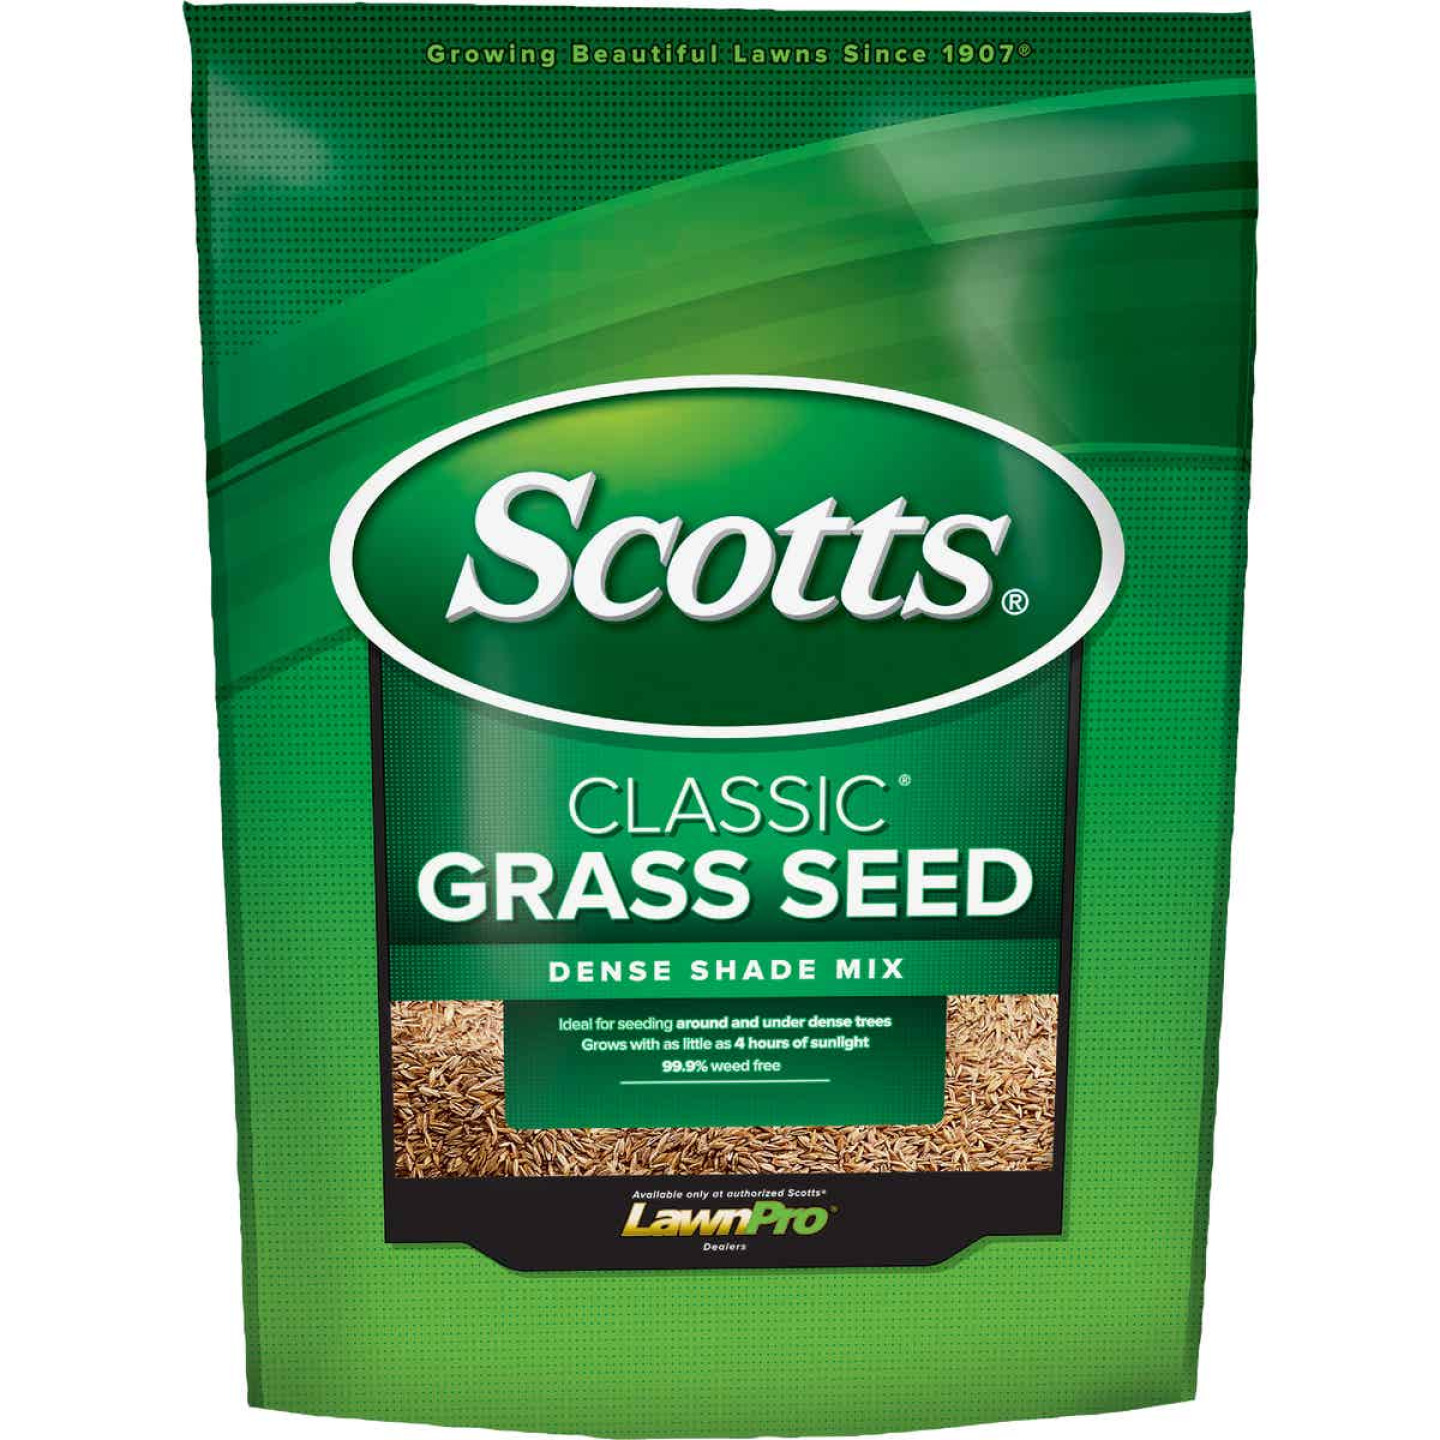 Scotts Classic 3 Lb. 650 Sq. Ft. Coverage Dense Shade Grass Seed Image 1